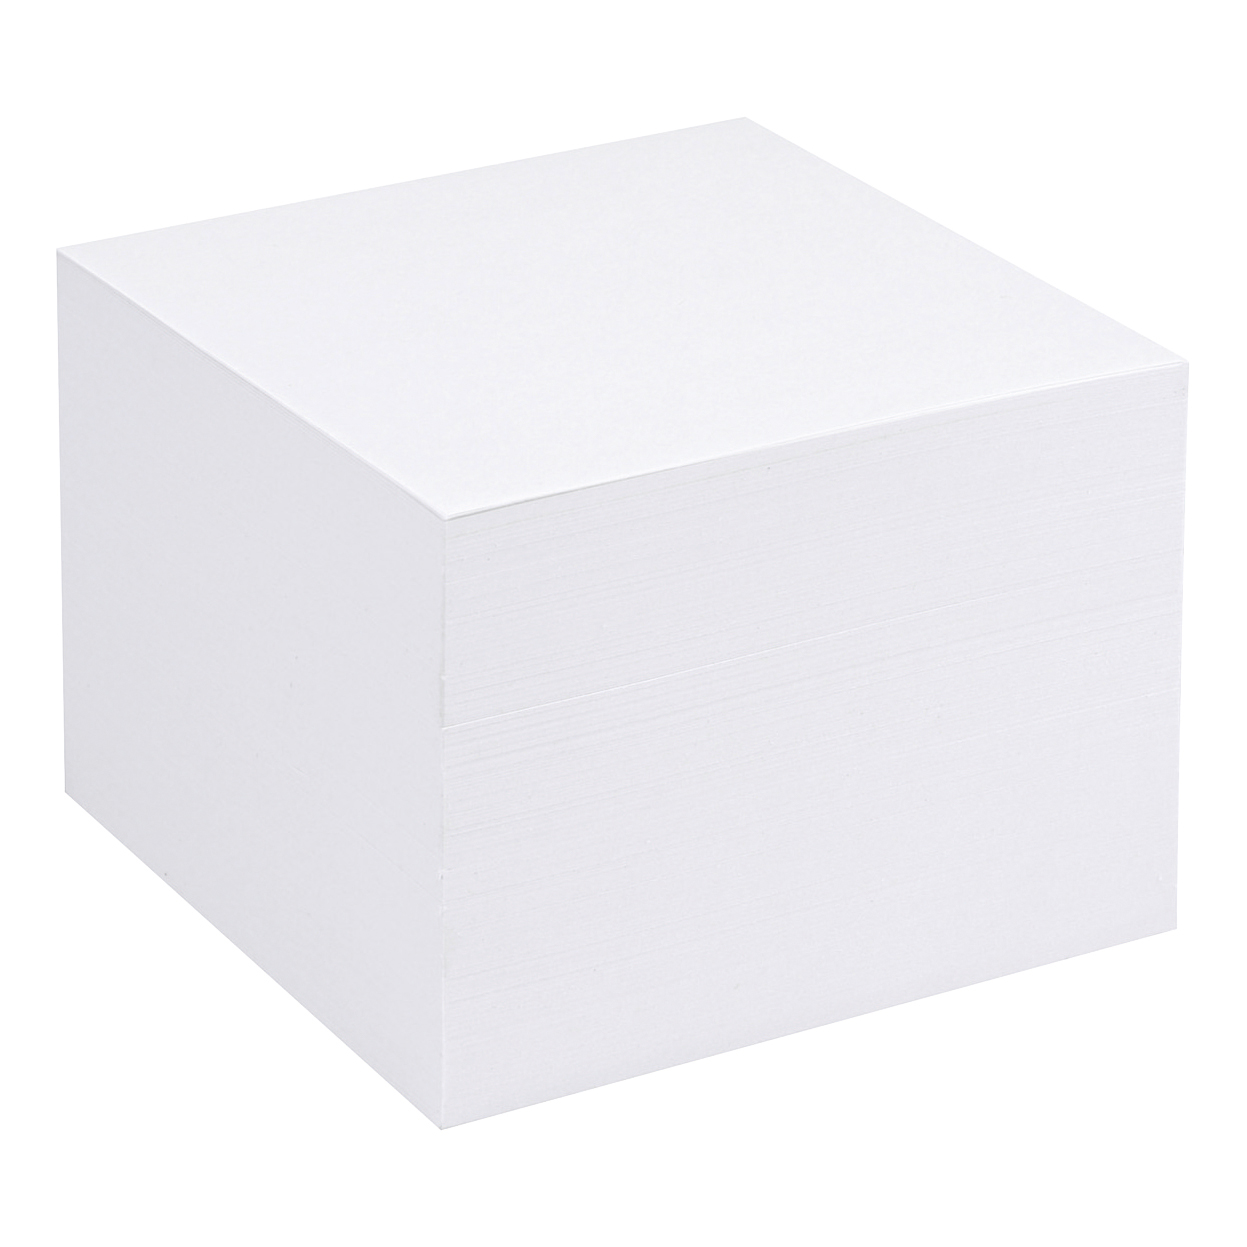 Image for 5 Star Office Refill Block for Noteholder Cube Approx. 750 Sheets of Plain Paper 90x90mm White